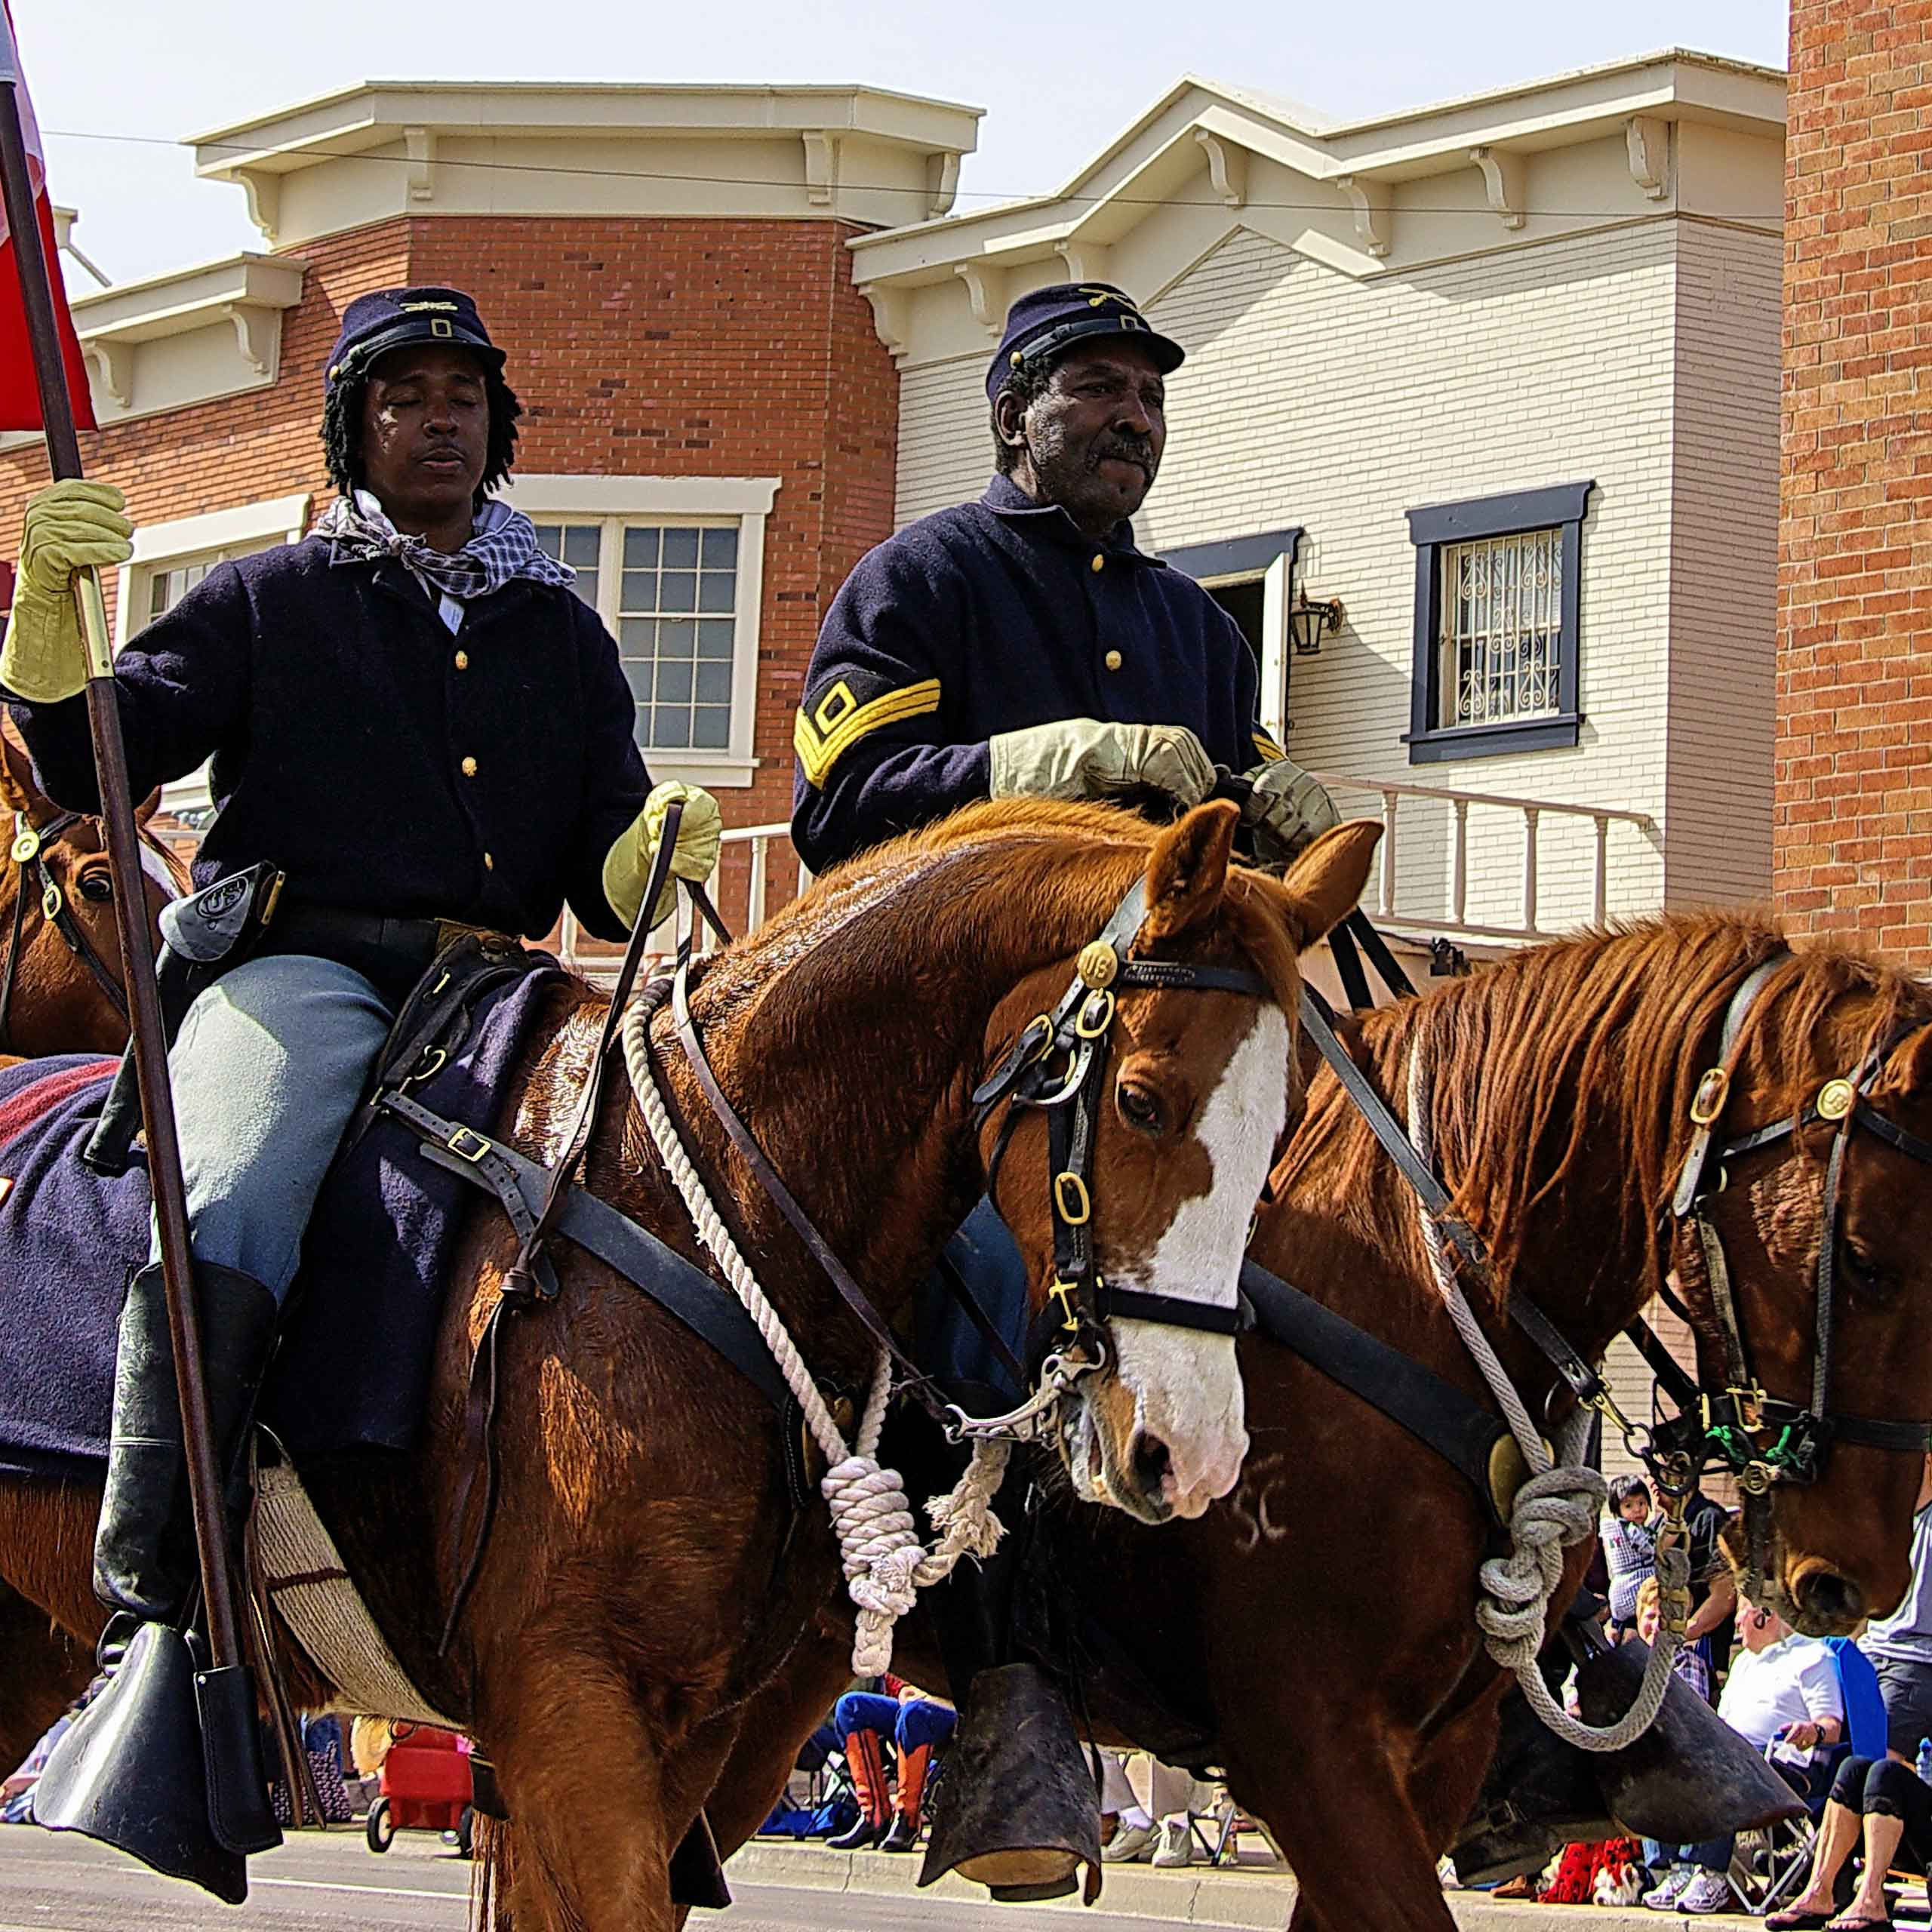 Buffalo Soldiers were established by Congress as the first peacetime all-black regiments in the regular U.S. Army. Salute to their service in Tombstone August 2 – 3 from 10am – 4pm on Allen Street.